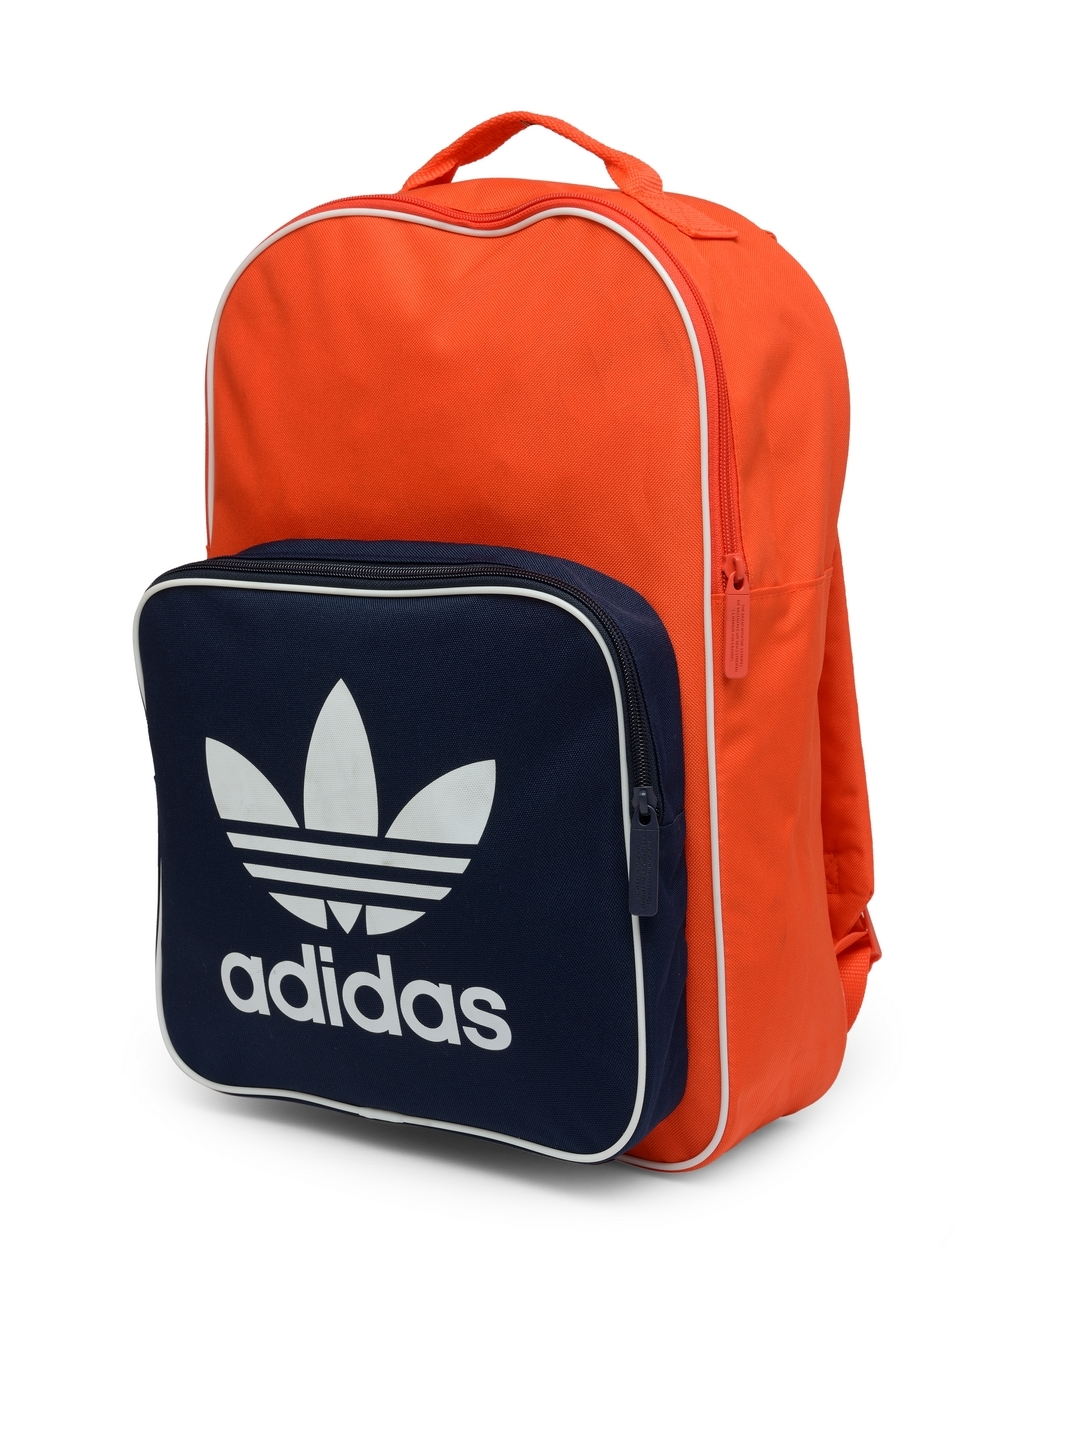 b4a85f15896b Buy Adidas Originals Unisex Red Brand Logo Backpack - Backpacks for ...